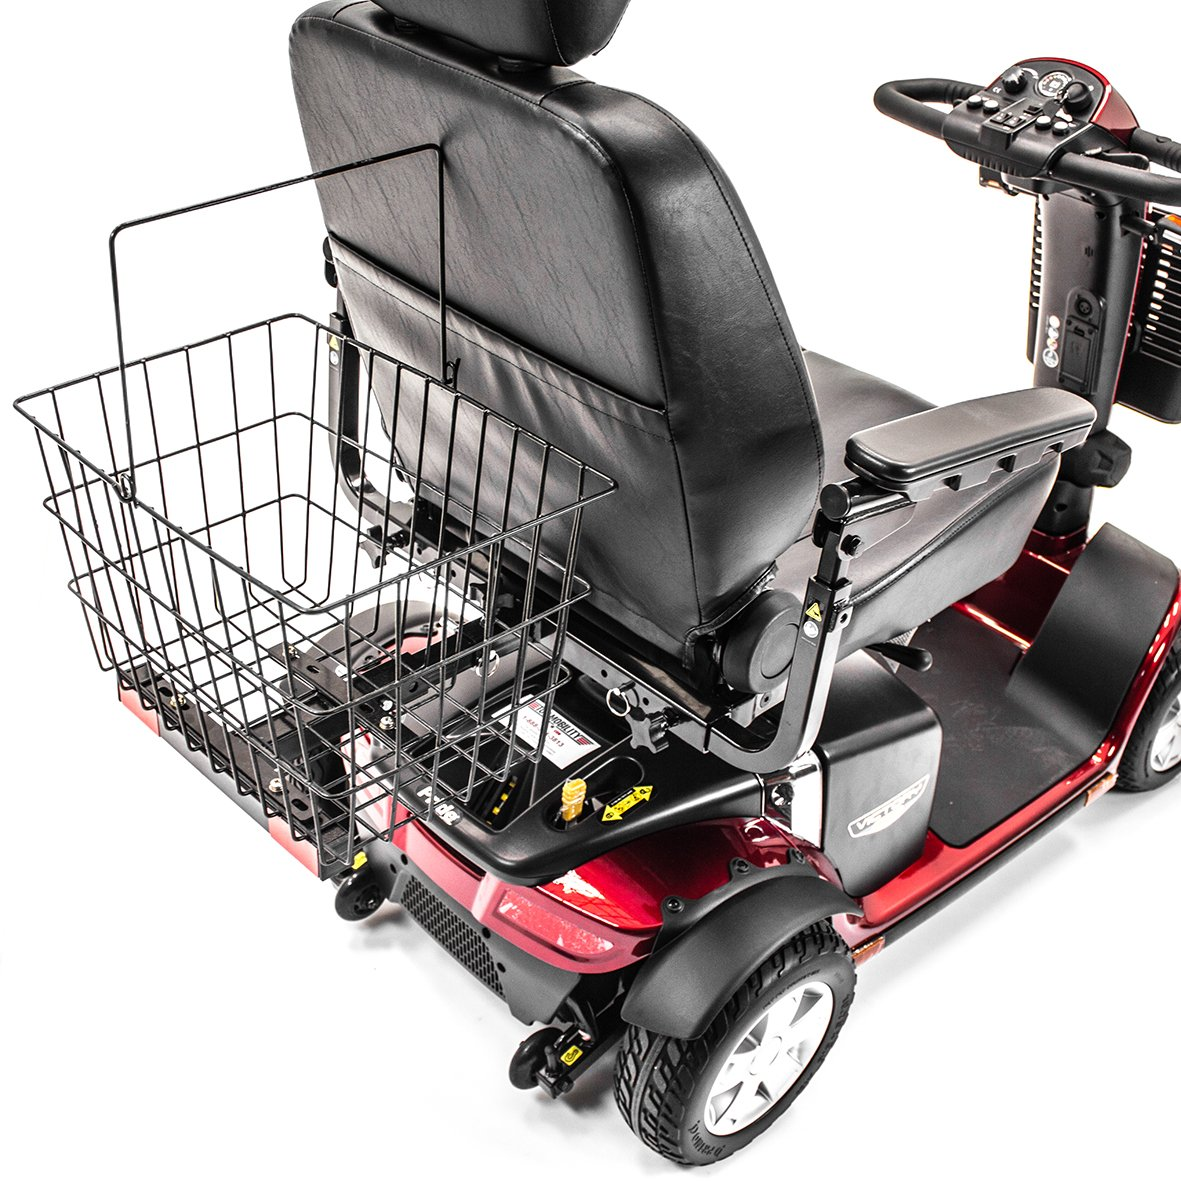 Challenger Mobility J900 Large Rear Basket for Most Drive Medical Cobra, Phoenix, Prowler, Scout, Spitfire & Ventura Mobility Scooters